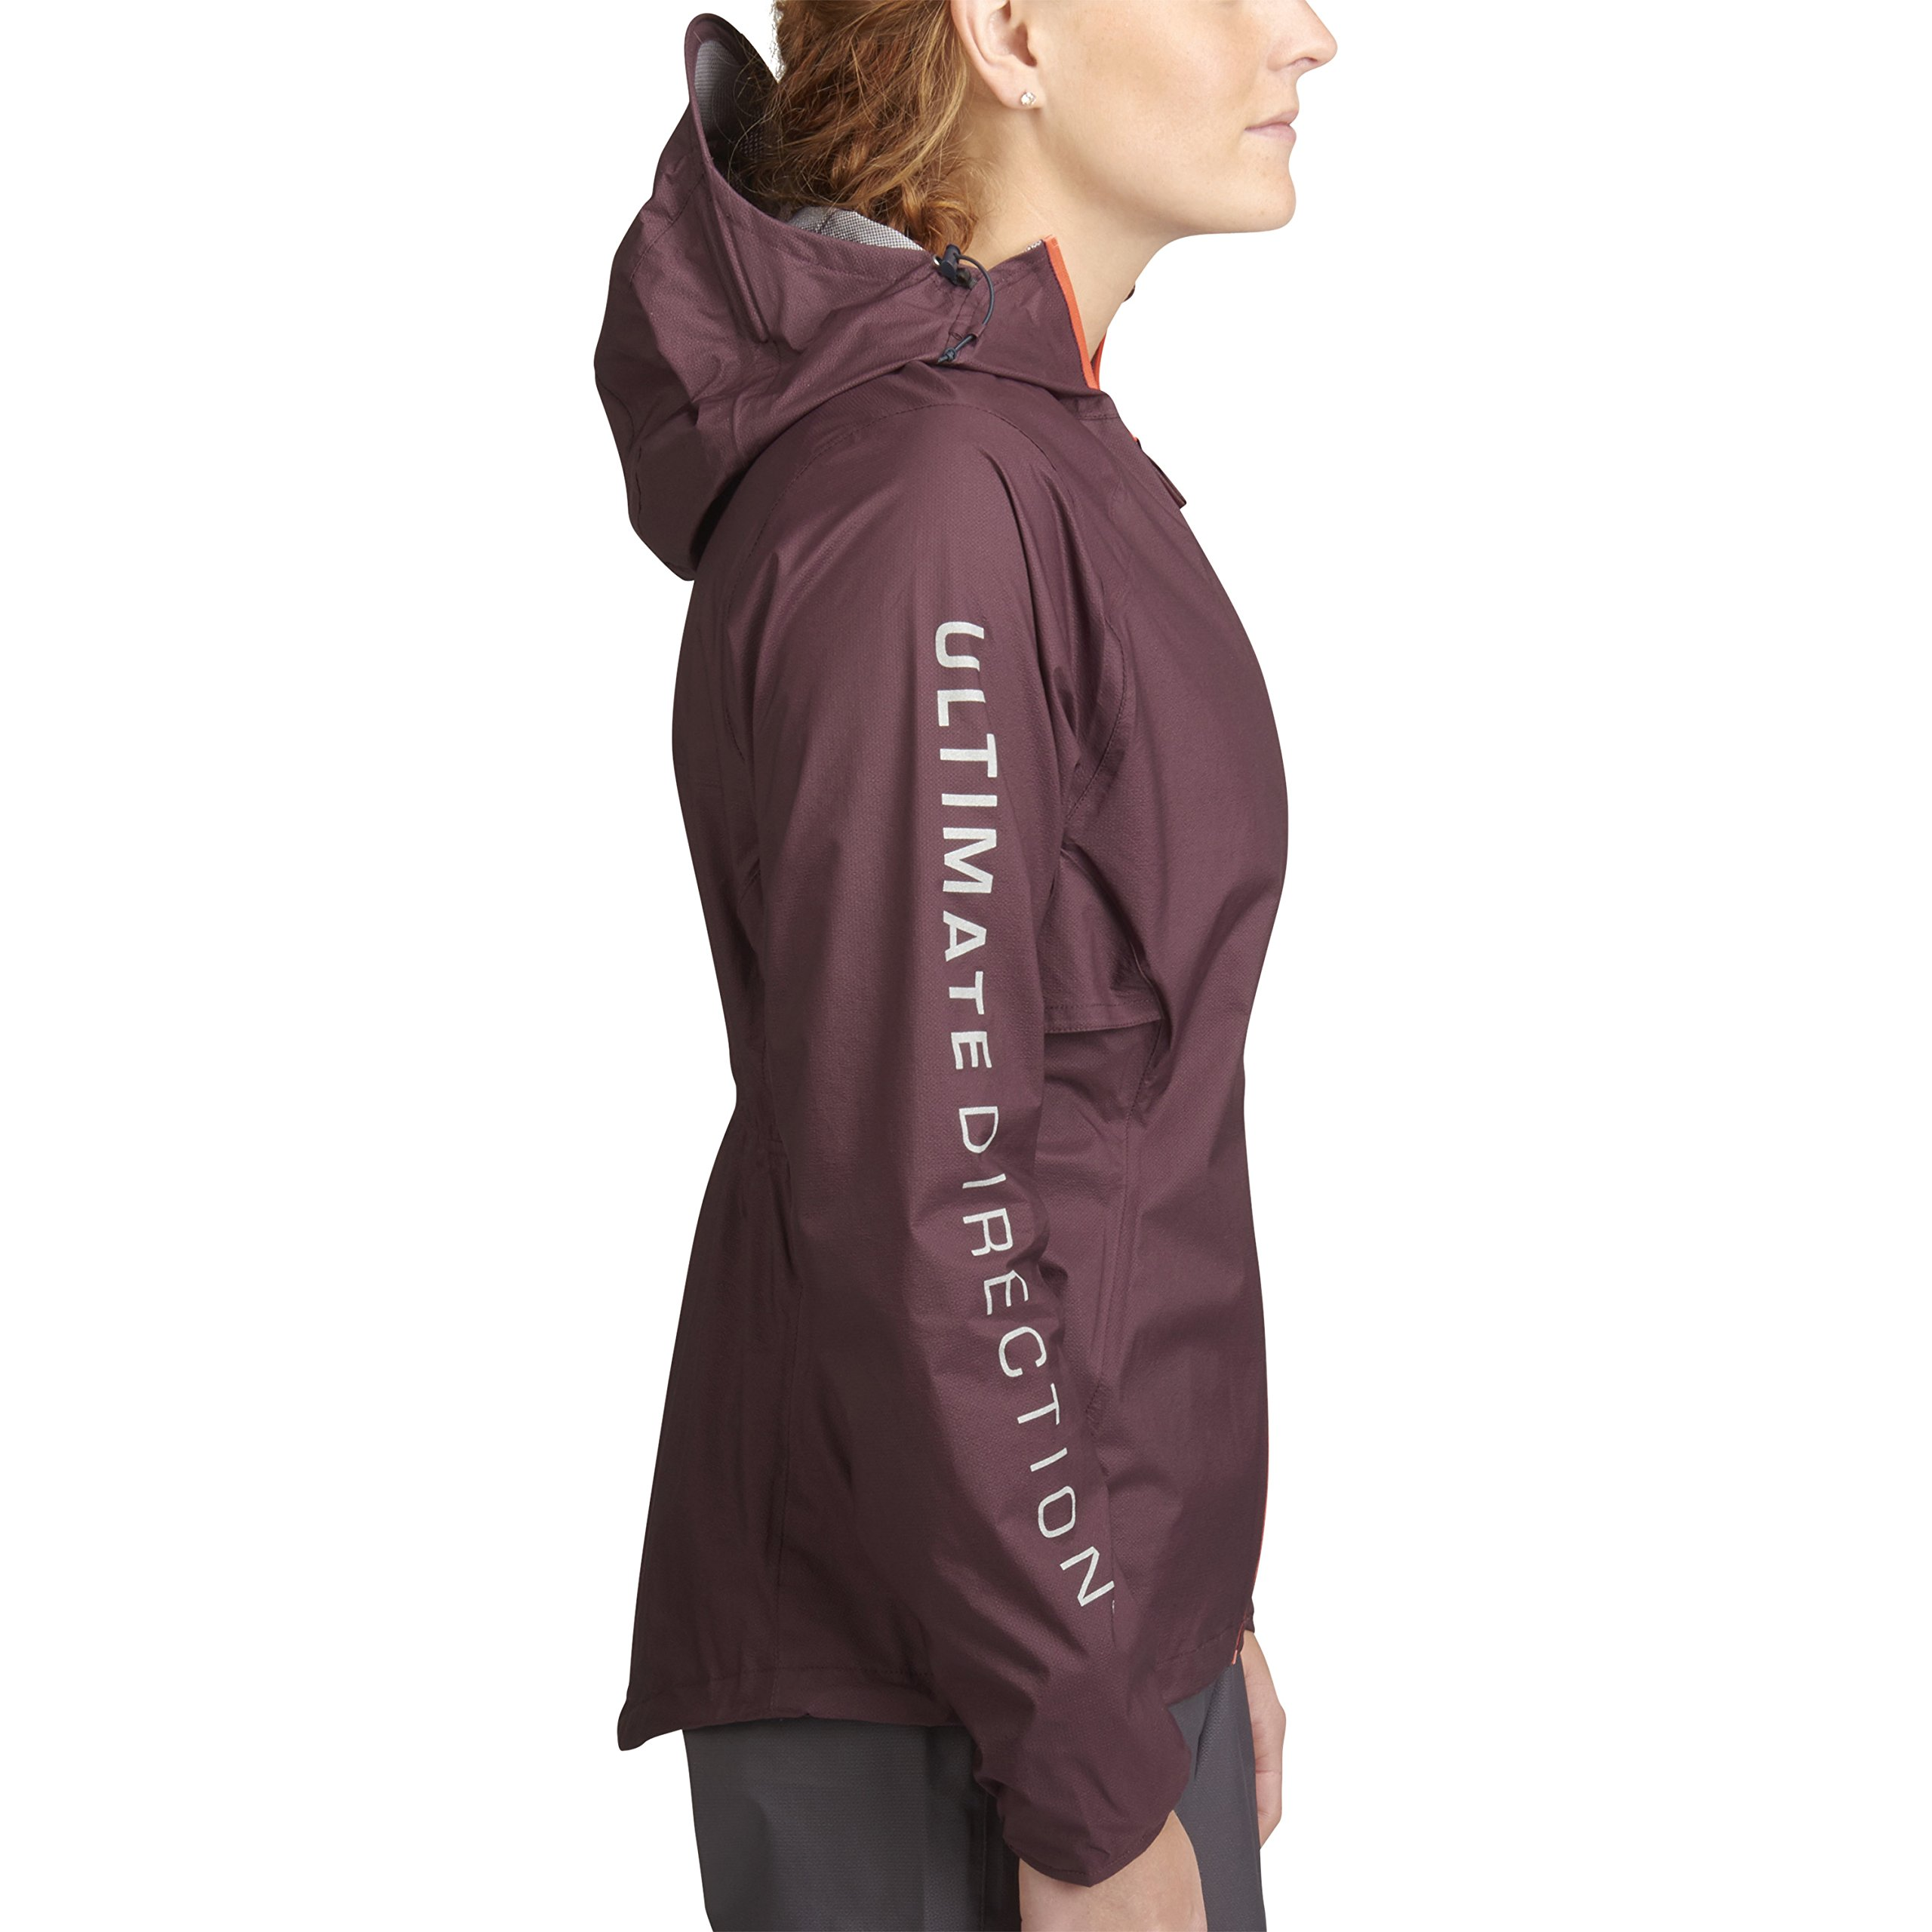 Ultimate Direction Women's Ultra Jacket V2, Fig, Small by Ultimate Direction (Image #4)